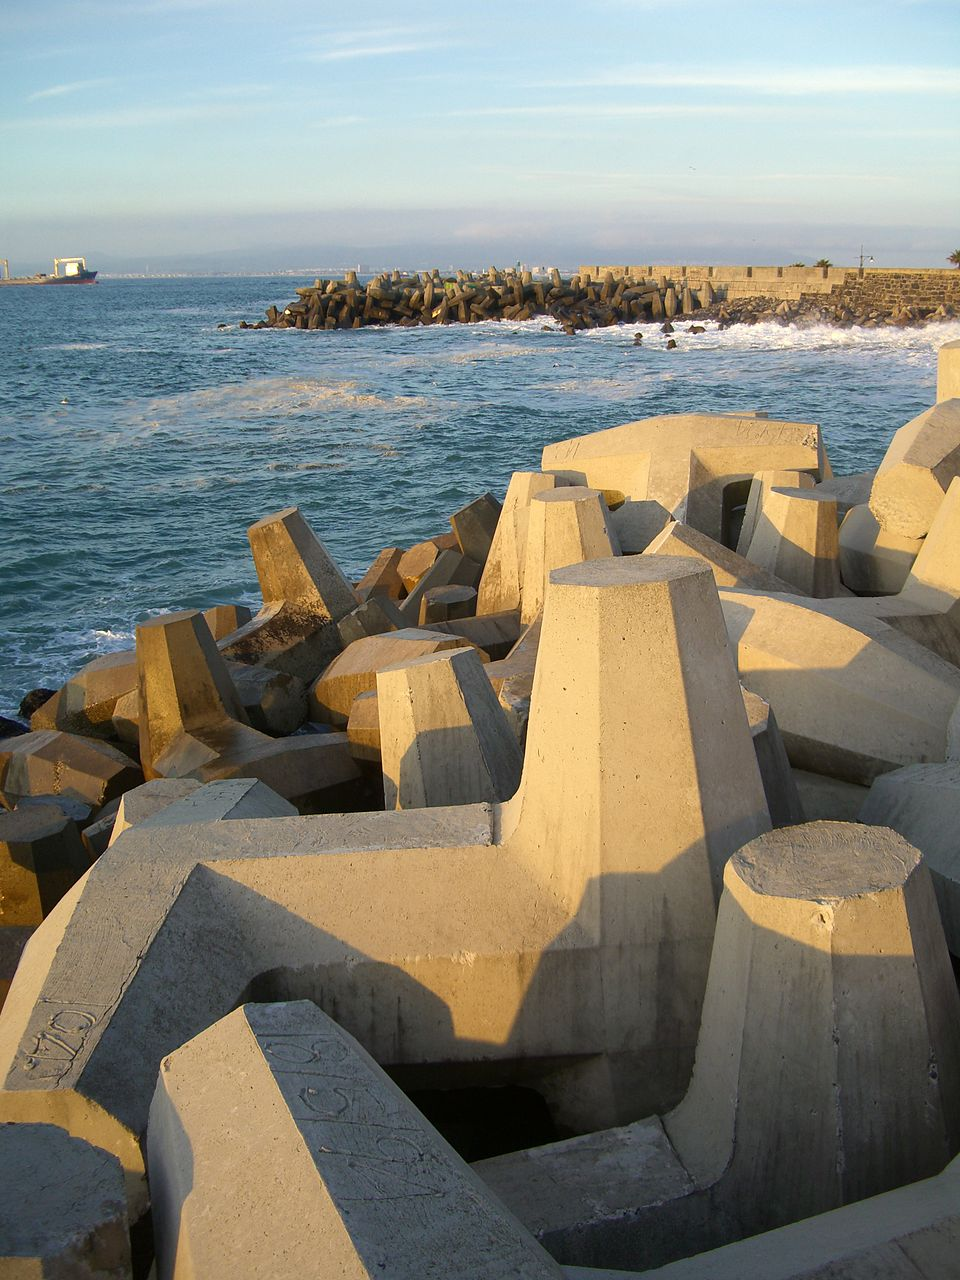 Dolosse forming a protective structure against a shoreline in Cape Town, South Africa